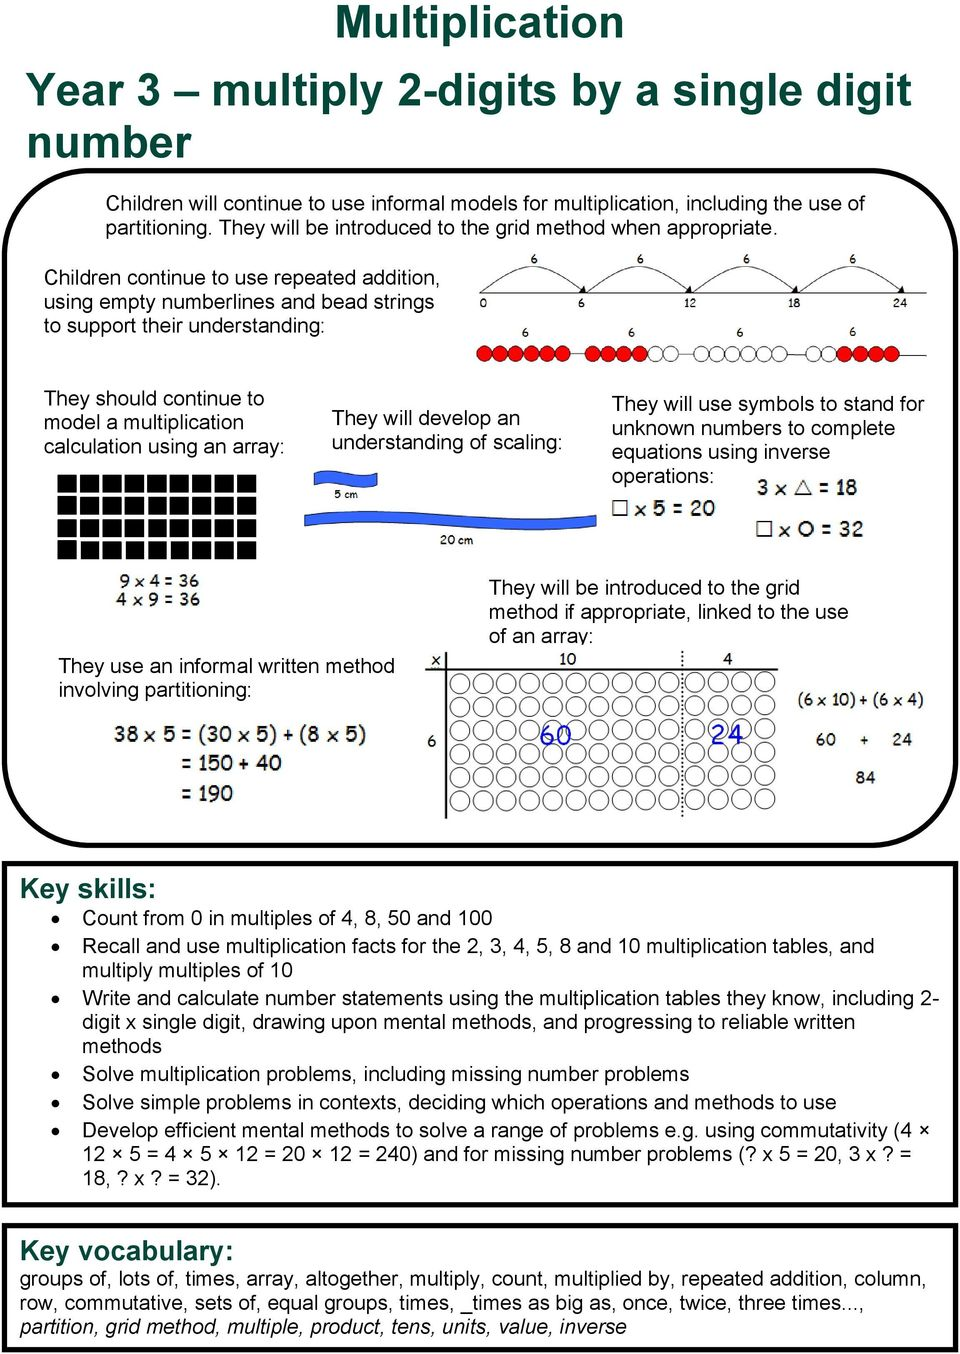 Children continue to use repeated addition, using empty numberlines and bead strings to support their understanding: They should continue to model a multiplication calculation using an array: They